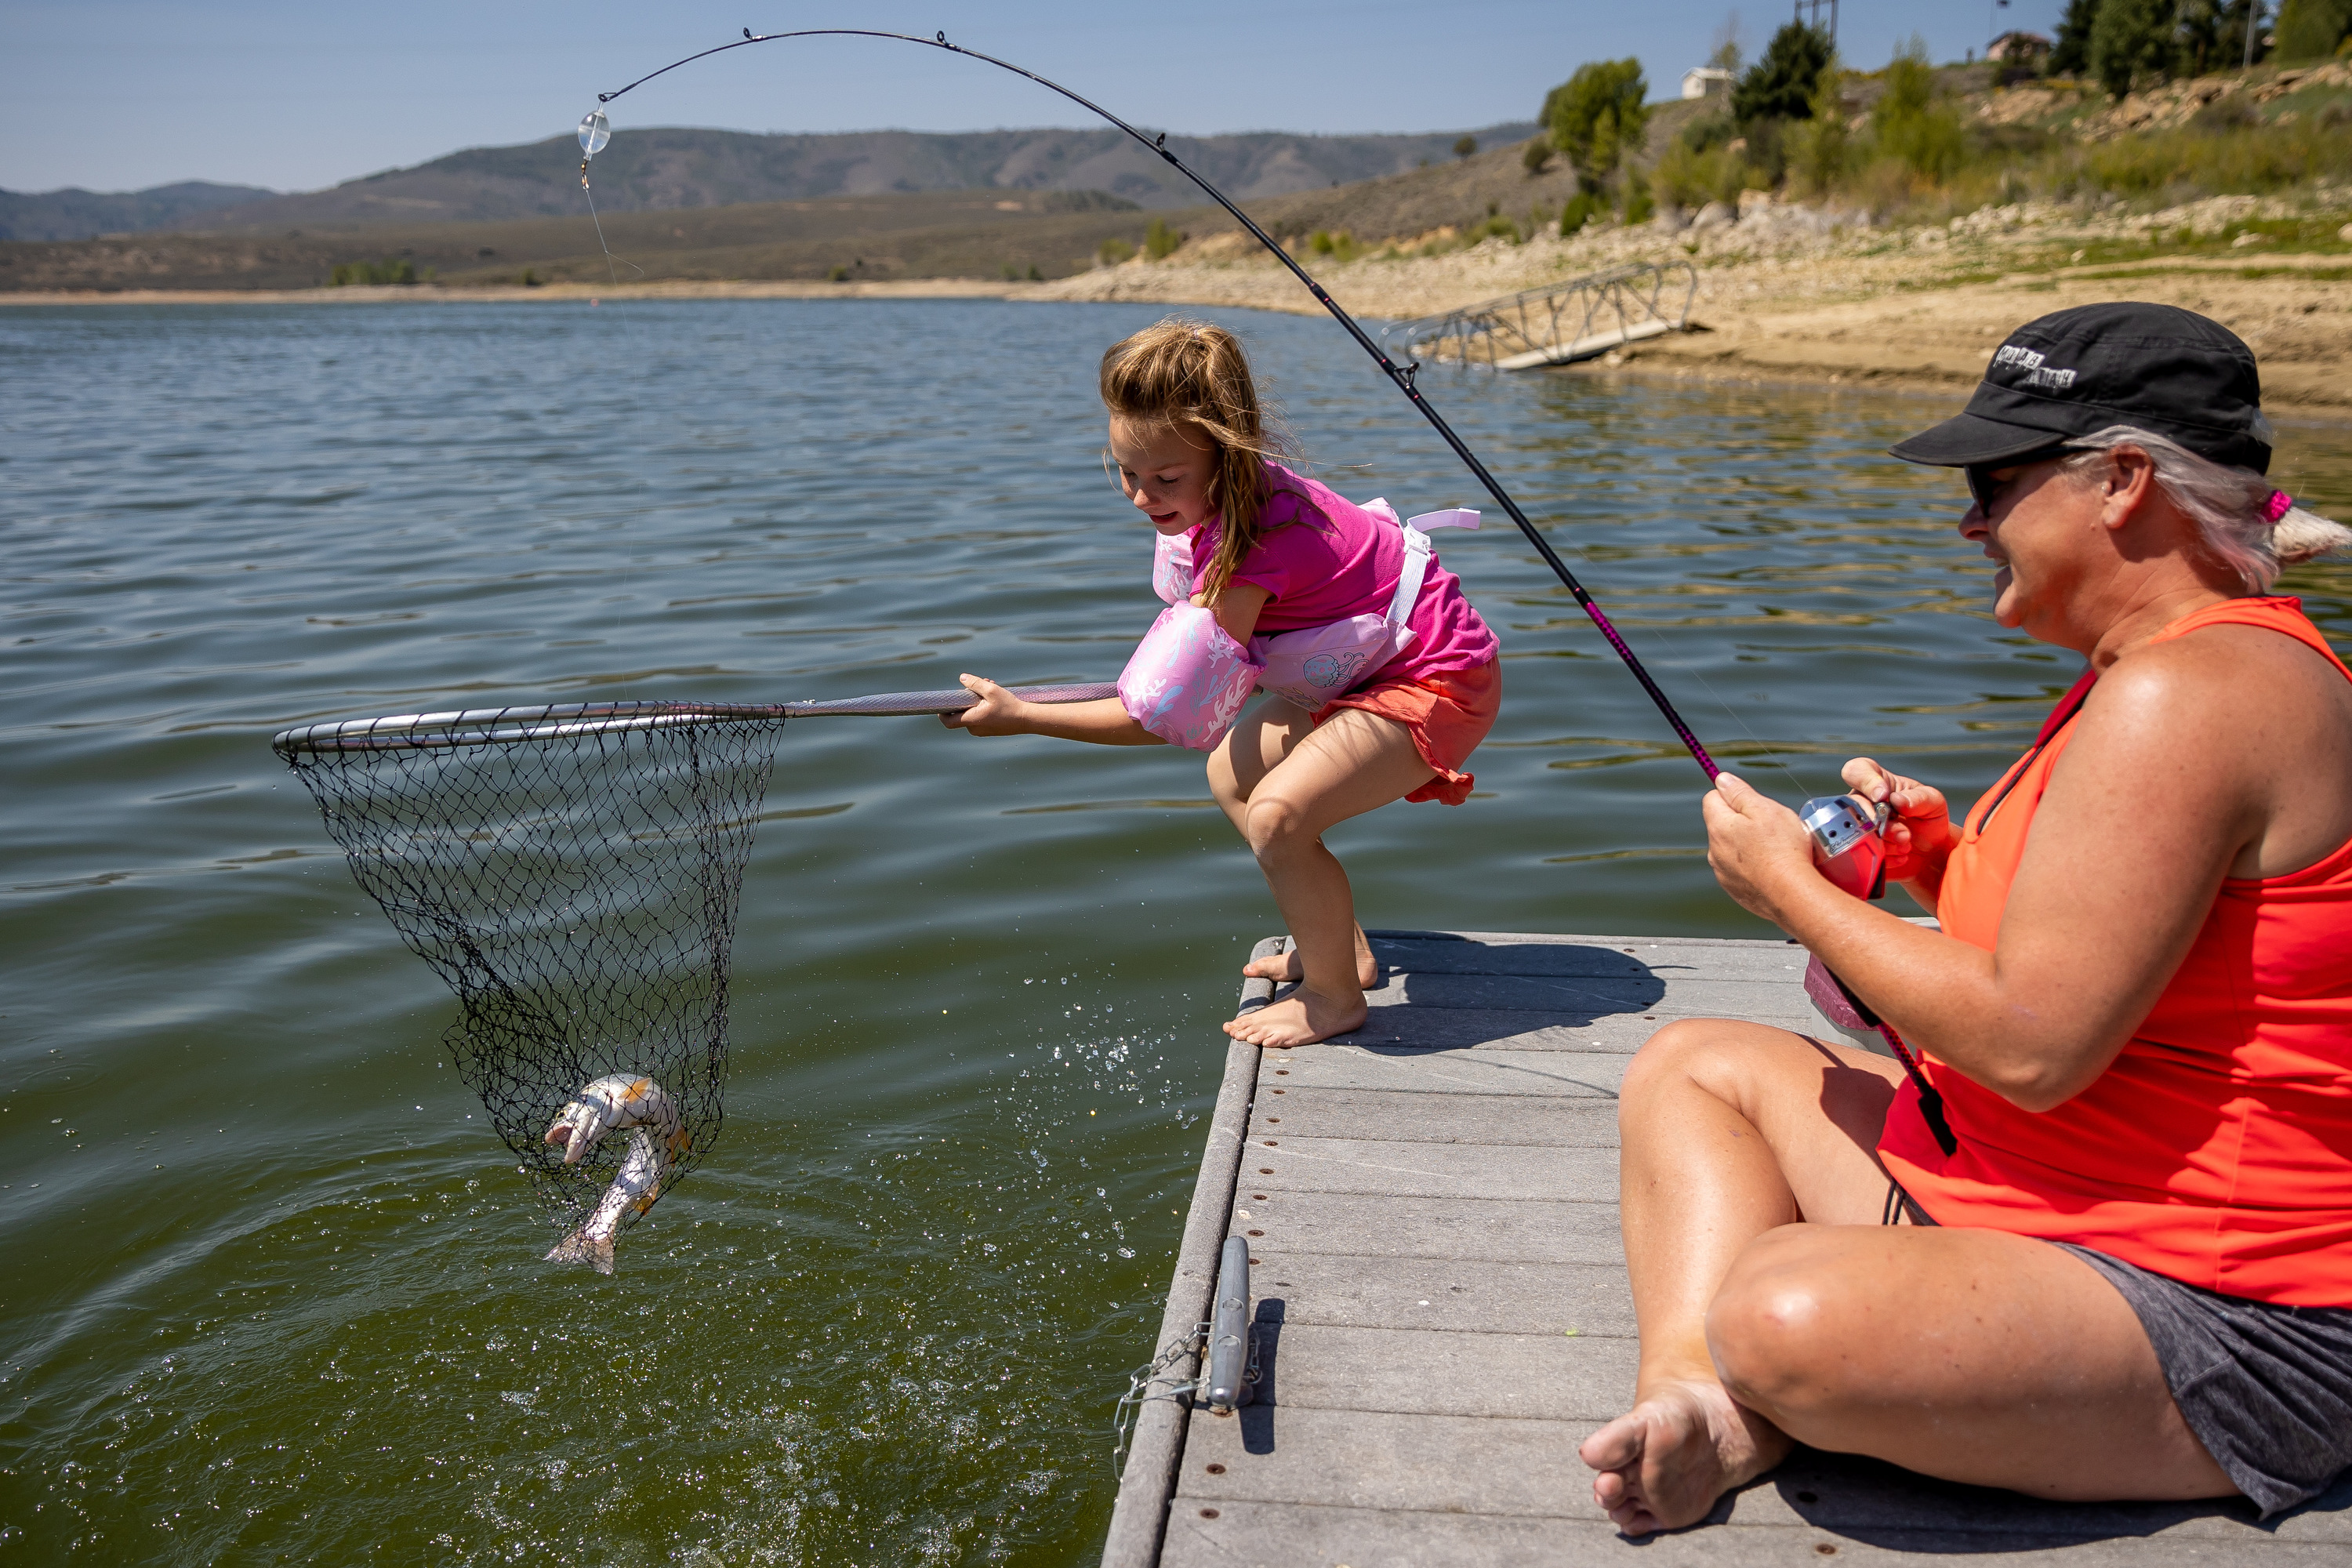 Presley Morse, 6, helps land a cutthroat trout while fishing with her mother, Jill Gilson, at Scofield State Park on Friday, Aug. 27, 2021.